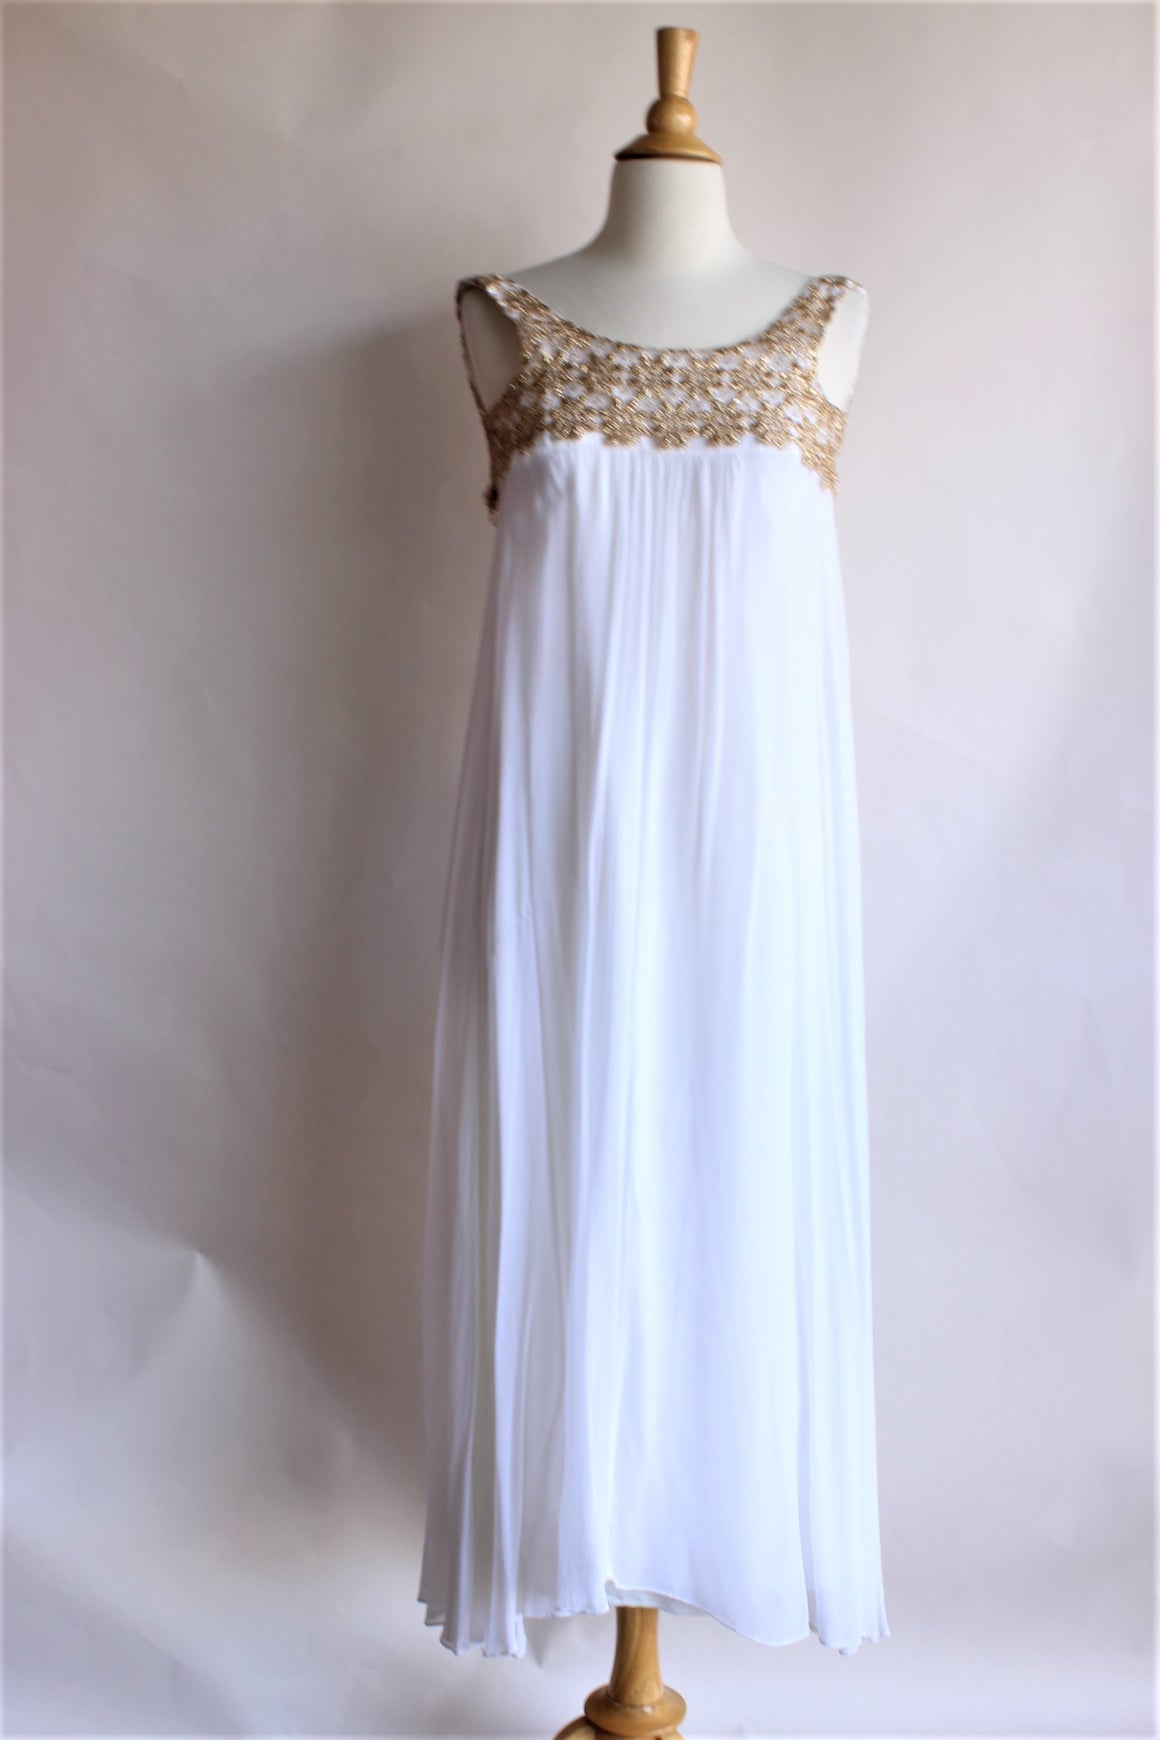 Vintage 1960s White and Gold Chiffon Maxi Dress